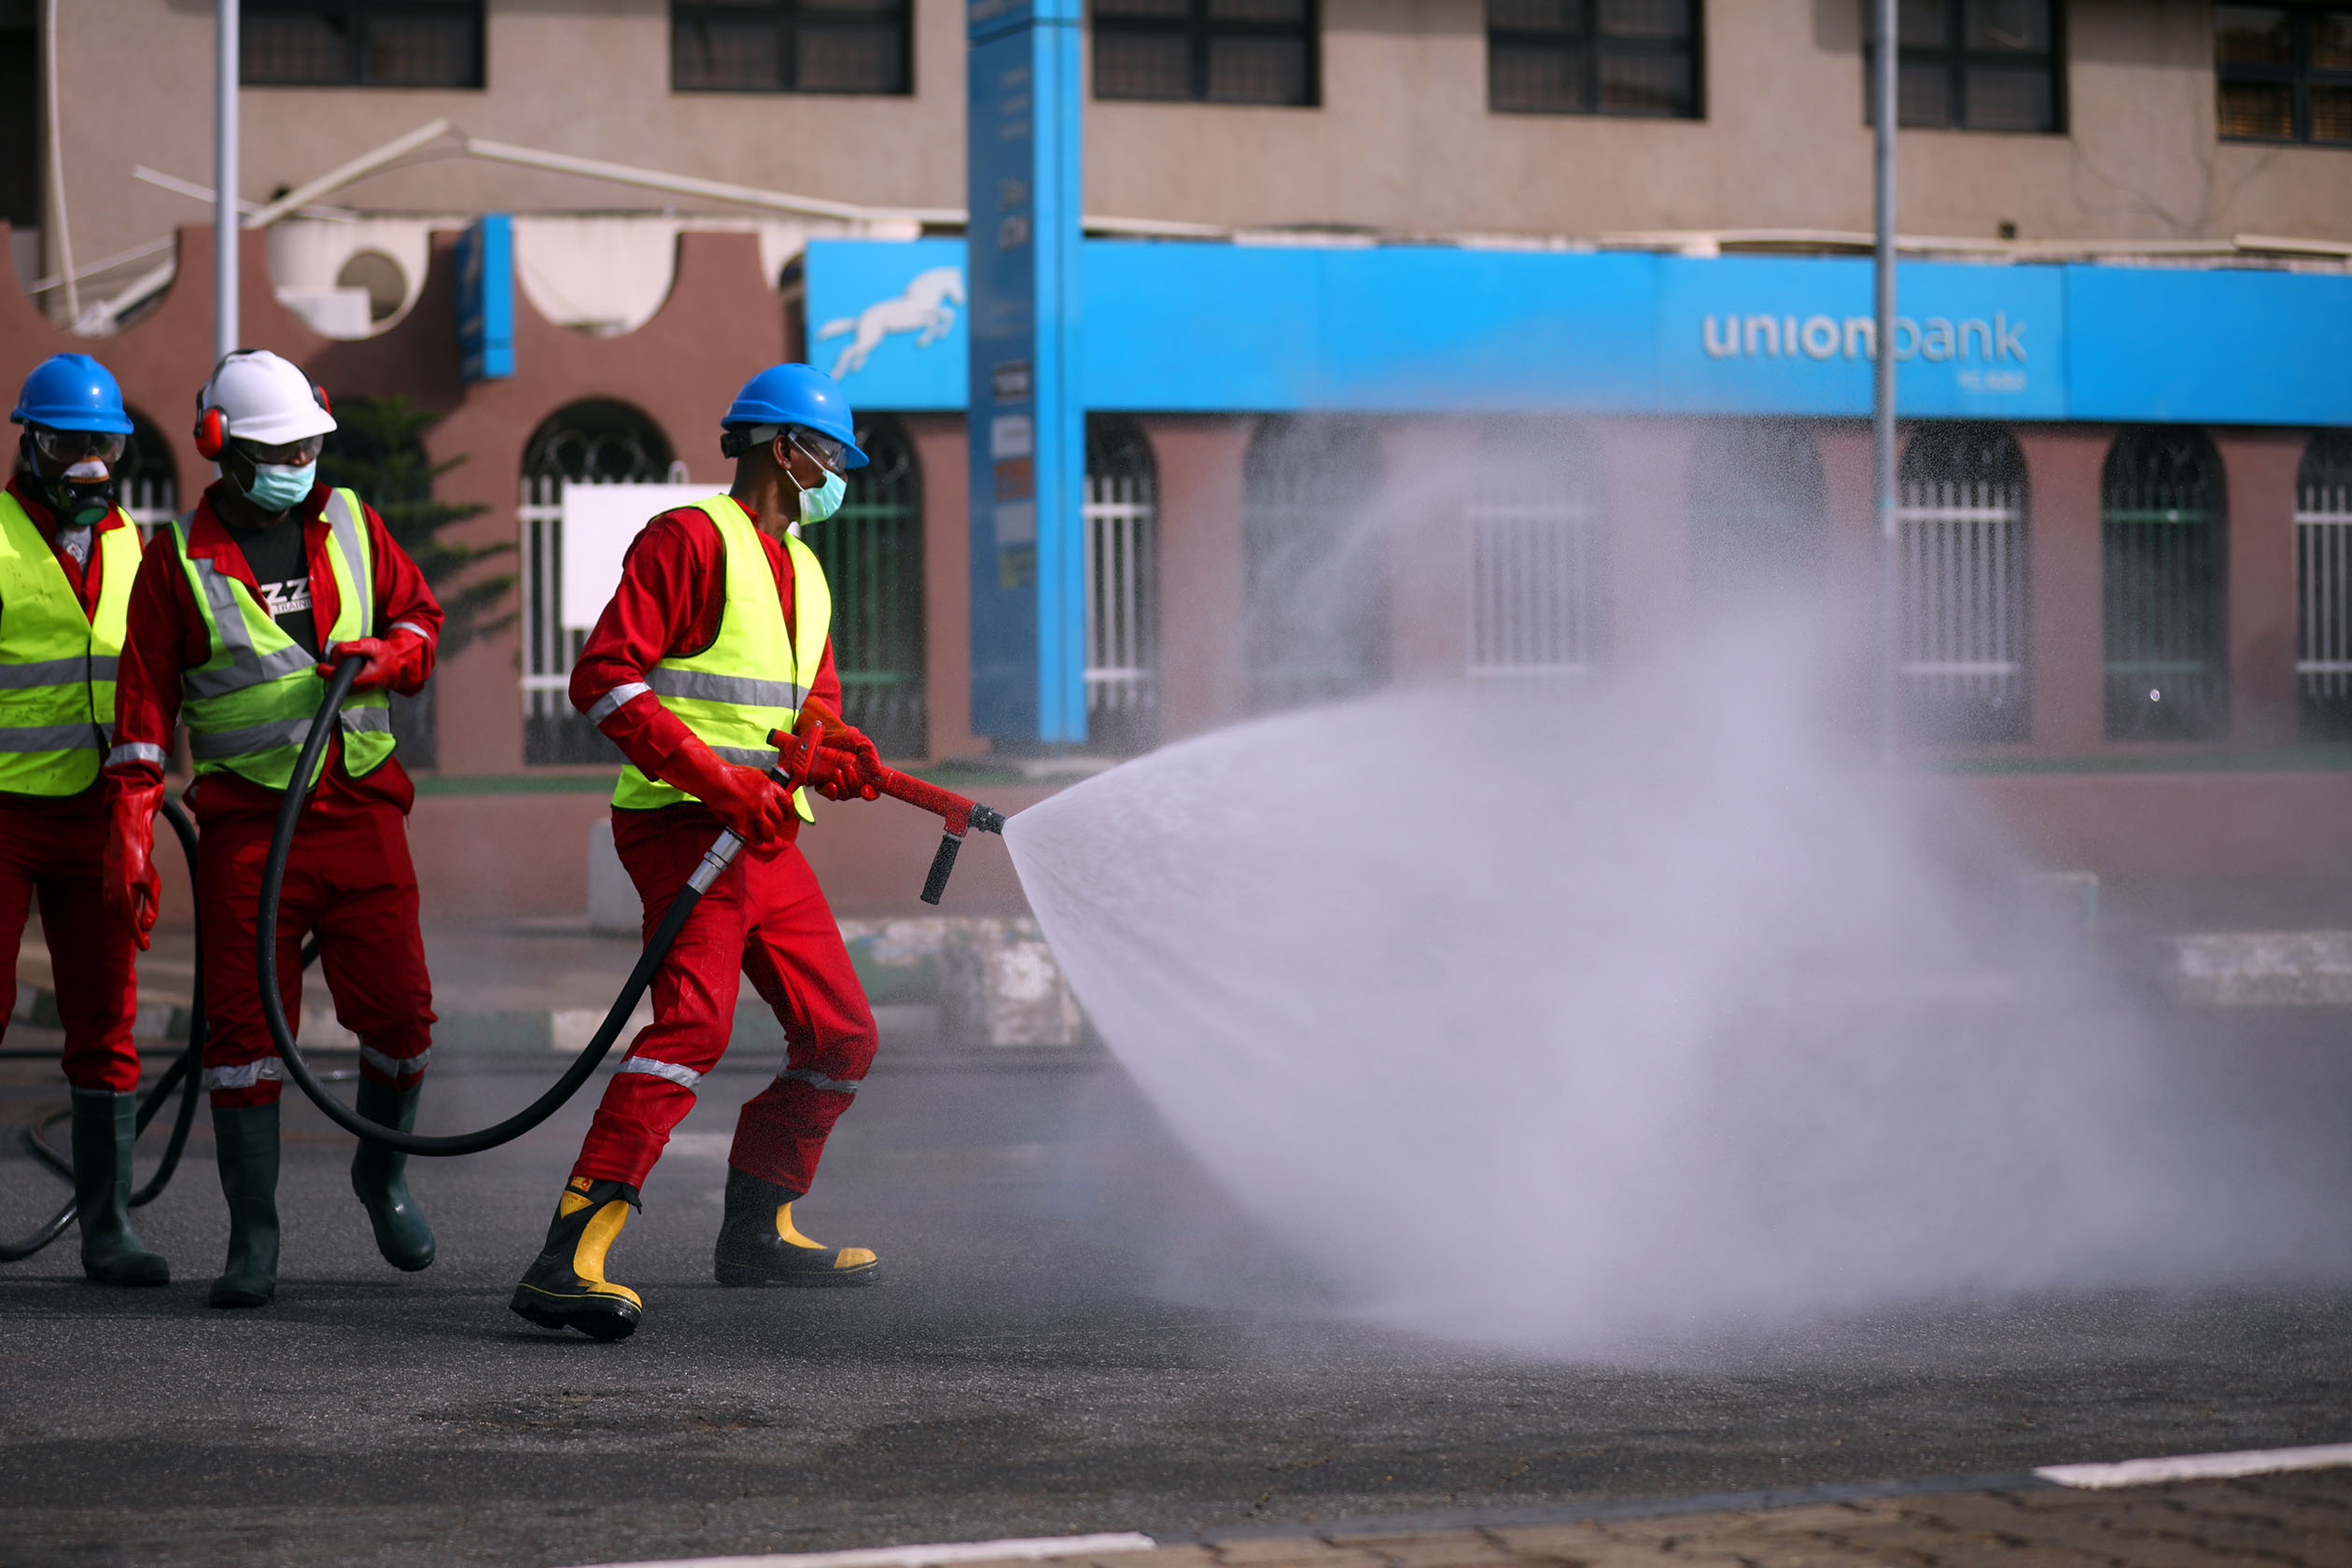 Fire service crews decontaminate the street on the third day of a 14-day lockdown aimed at limiting the spread of coronavirus disease (COVID-19), in Abuja, Nigeria April 2, 2020. Photo: Sodiq Adelakun / Channels TV